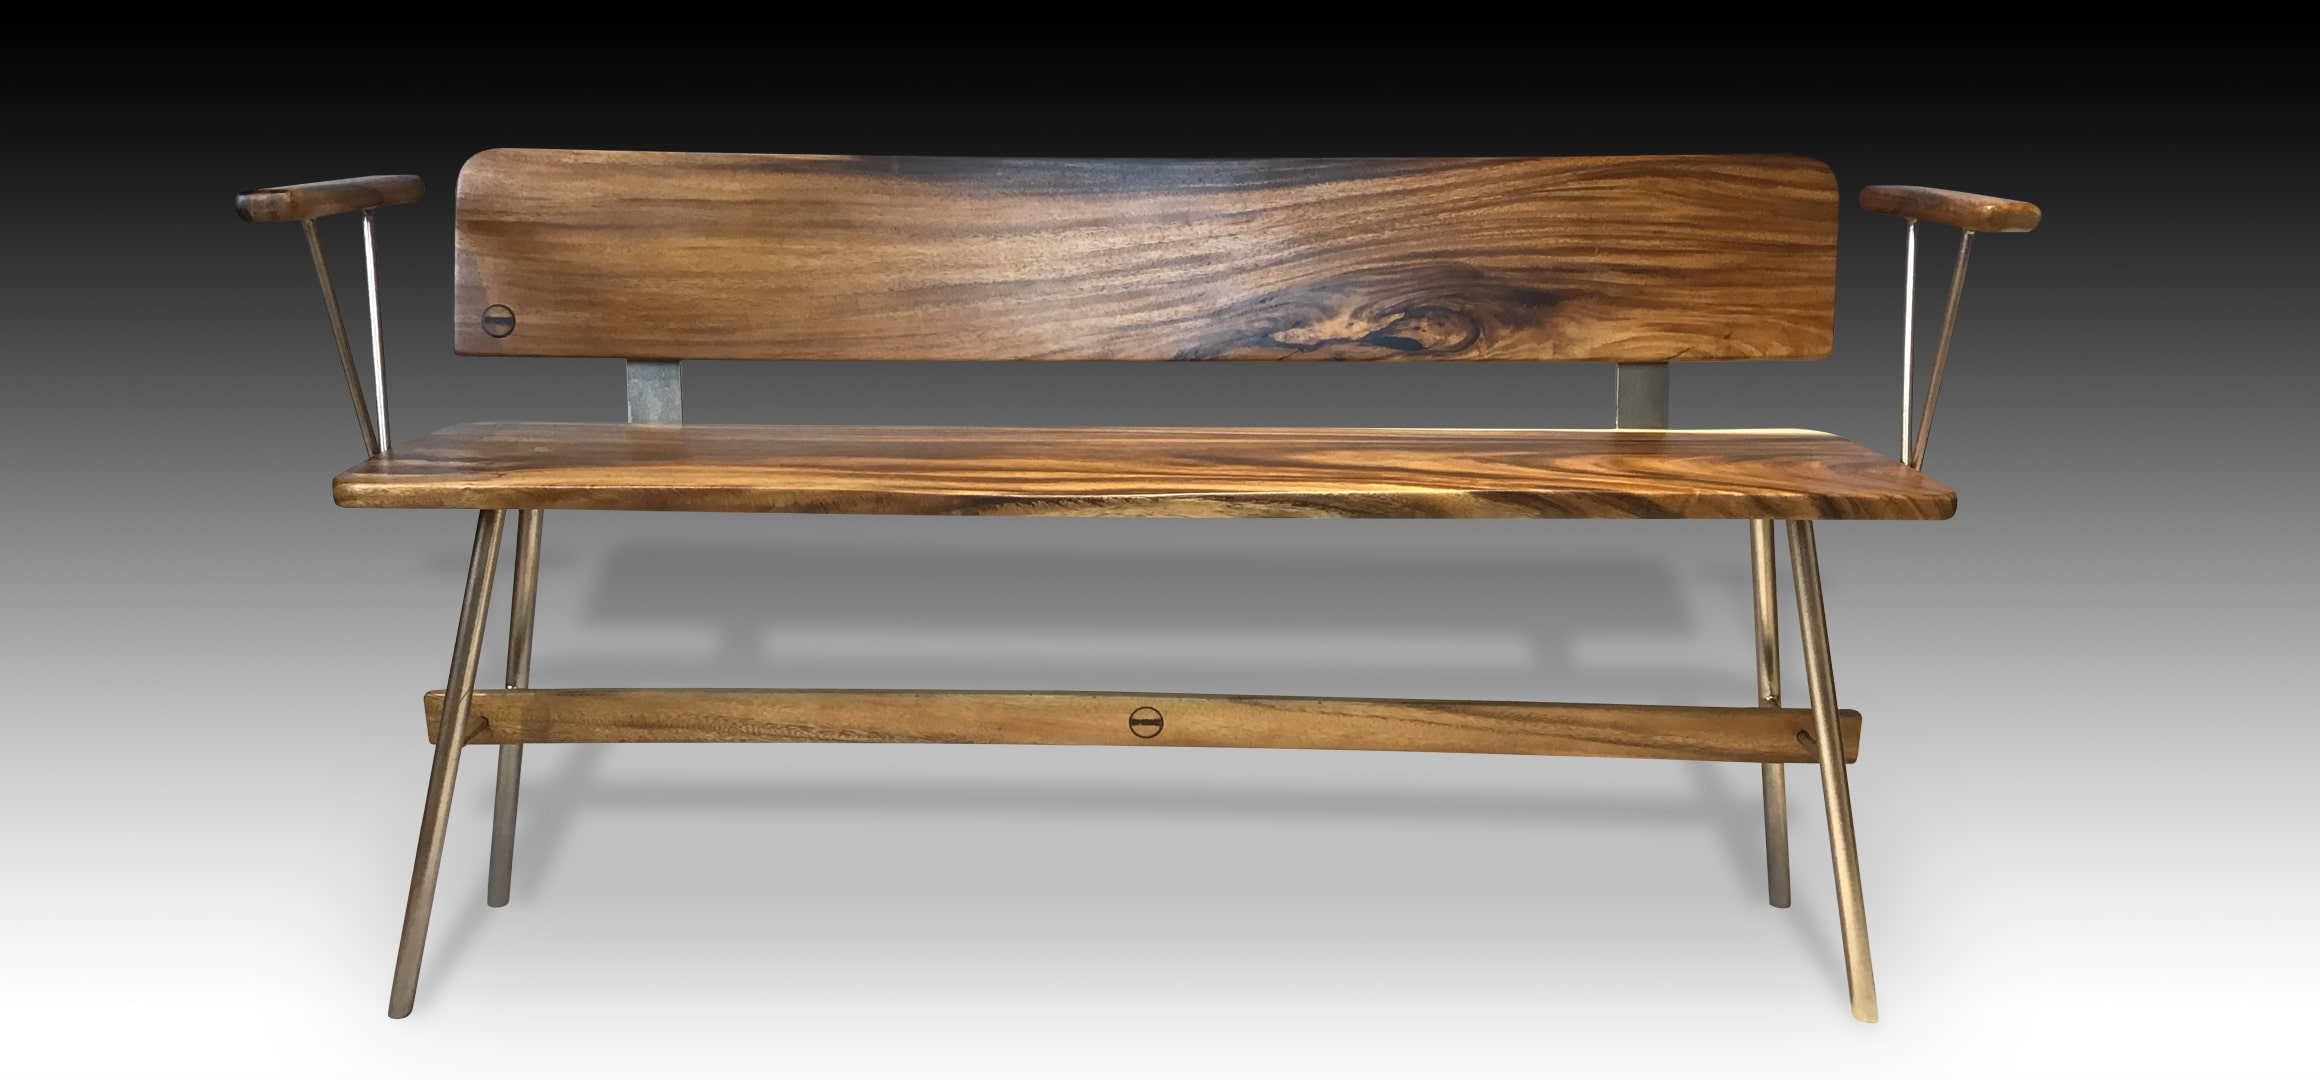 The front view of Suar wood wooden bench with Vernon Rose Gold legs and handle